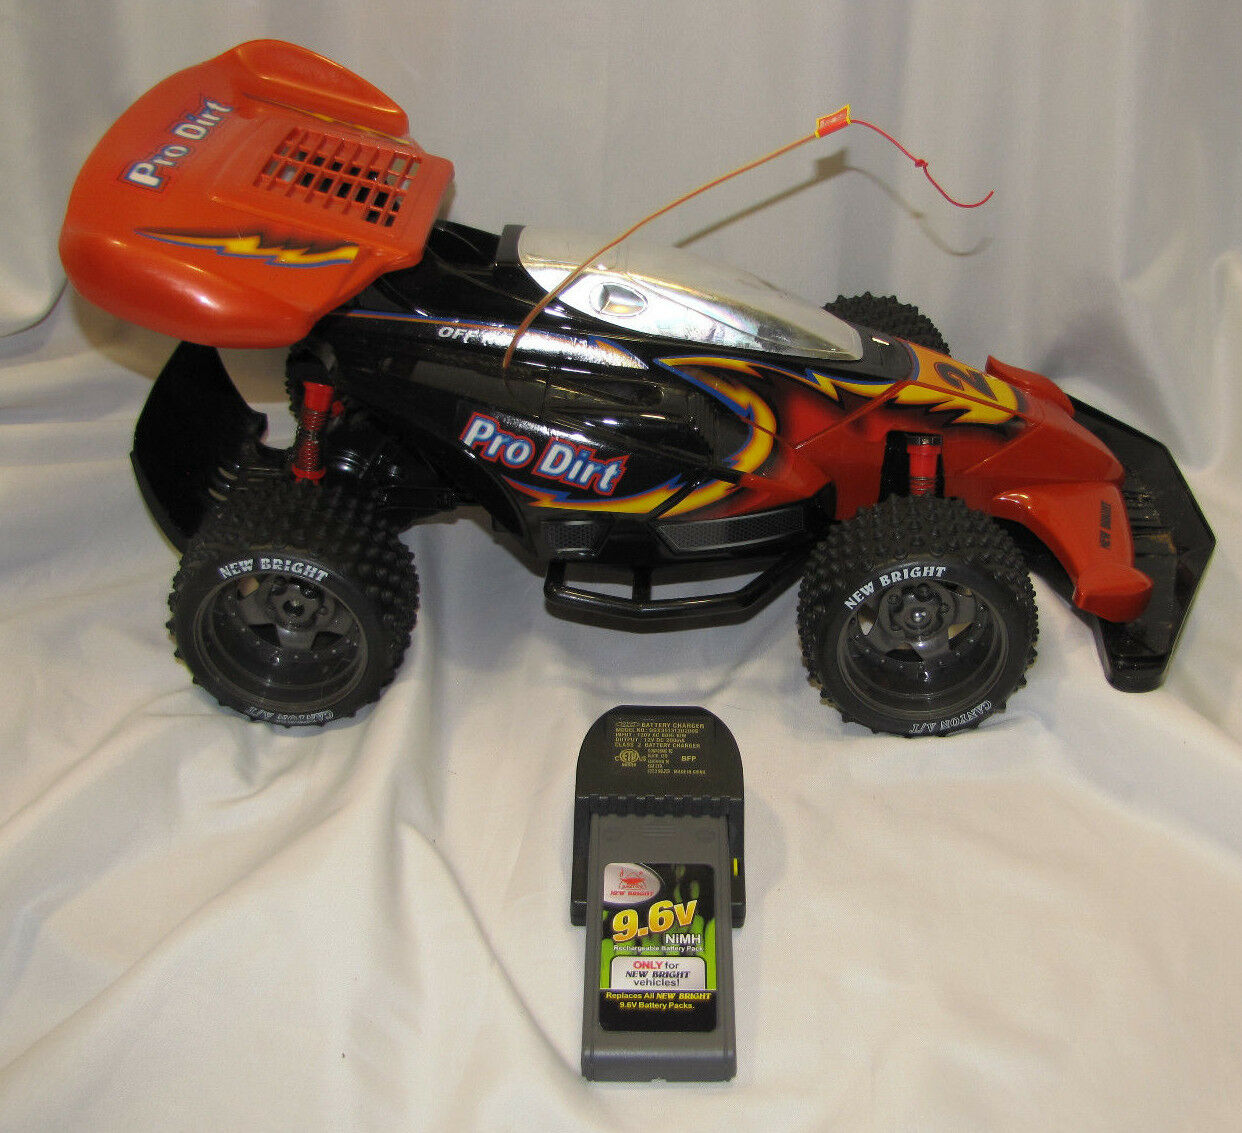 PRO DIRT OFF ROAD NEW BRIGHT VEHICLES 9.6V RC R C CAR ROT NEW BRIGHT 4 X 4